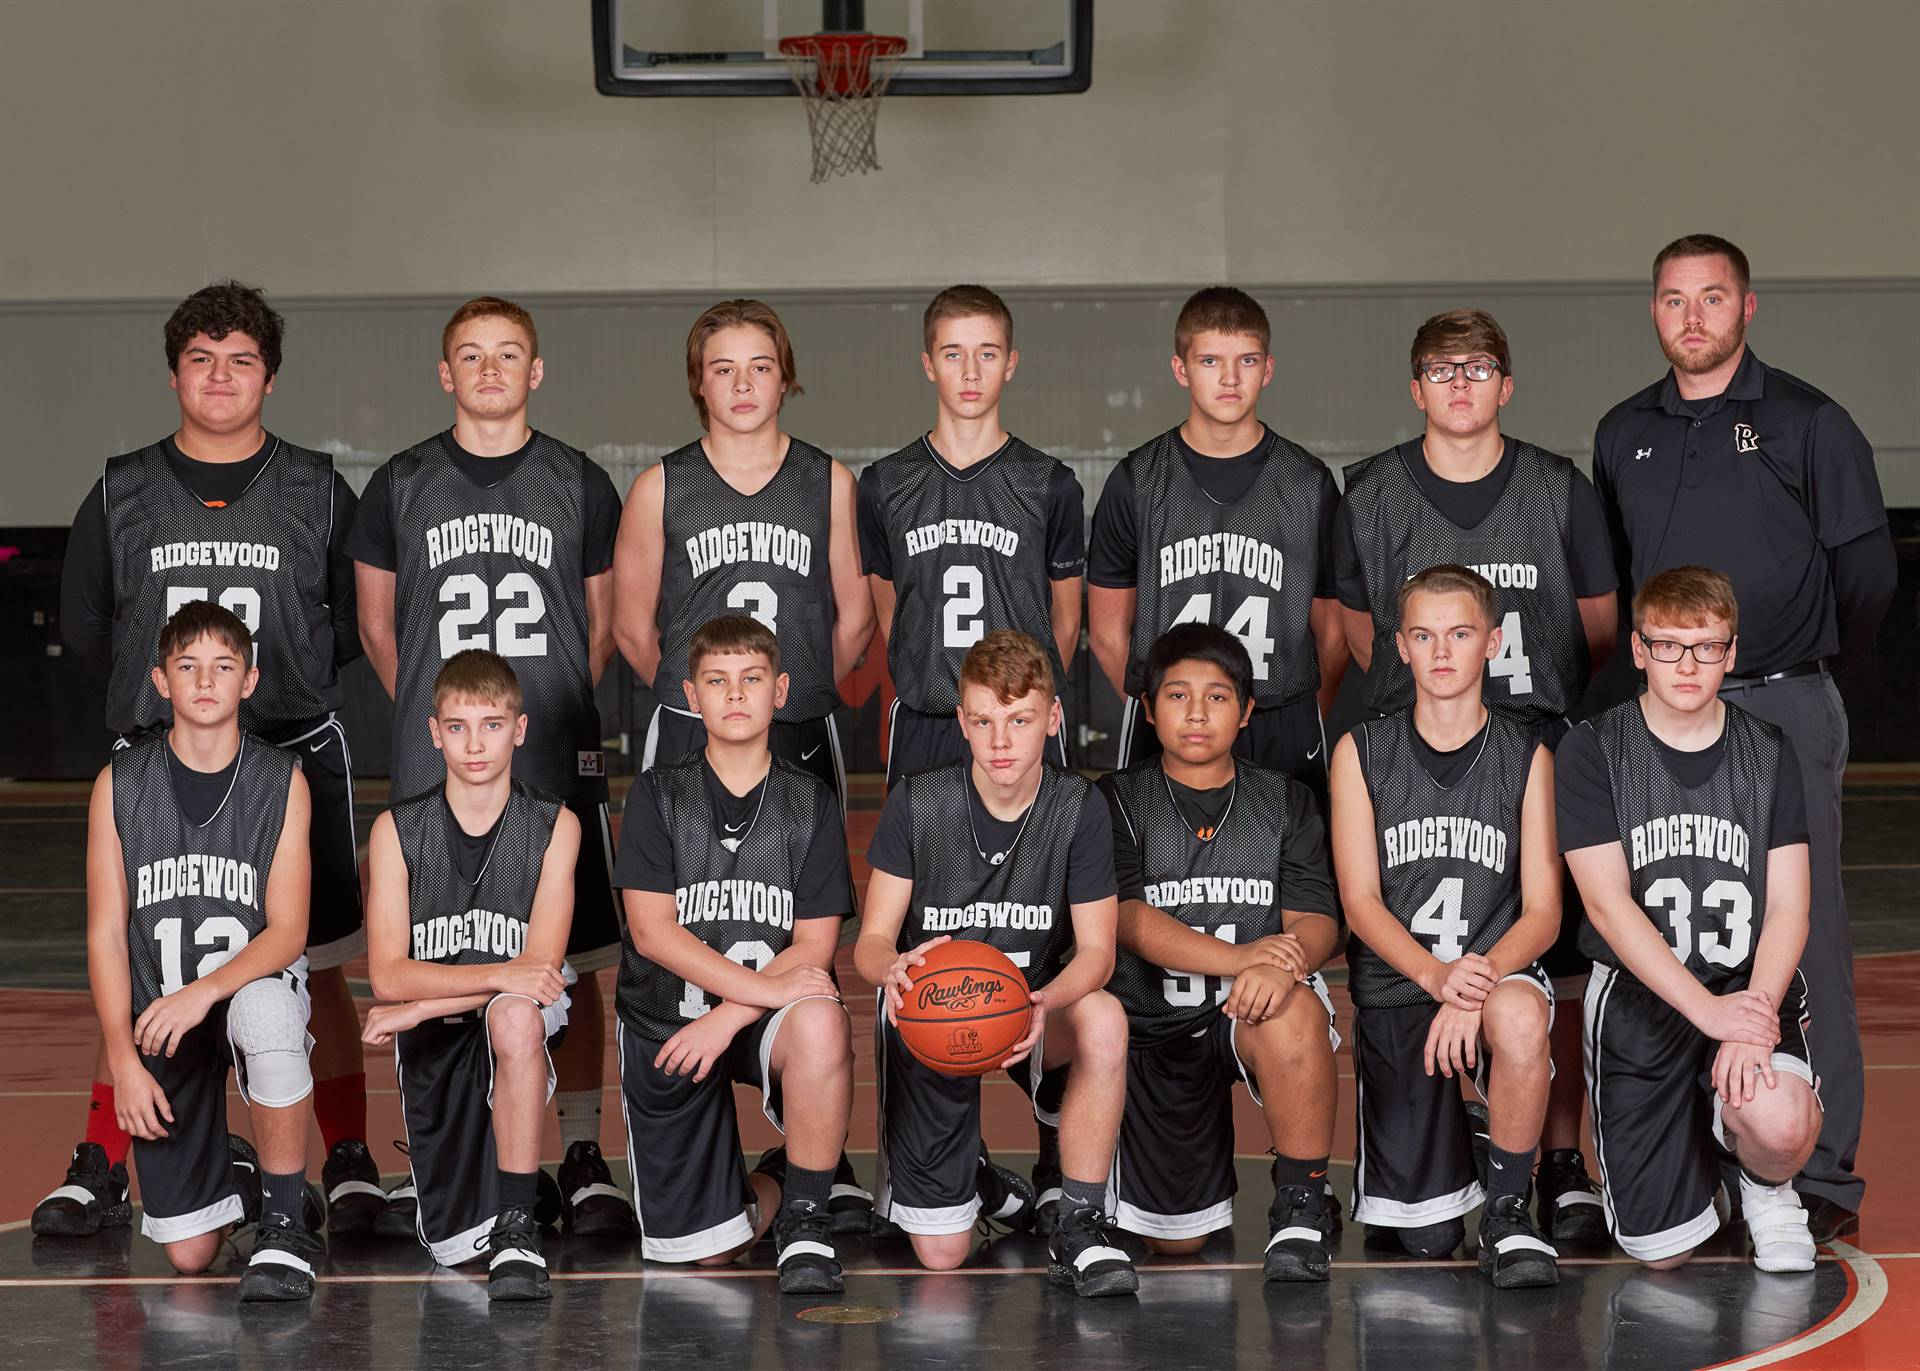 8th Boys Basketball Team